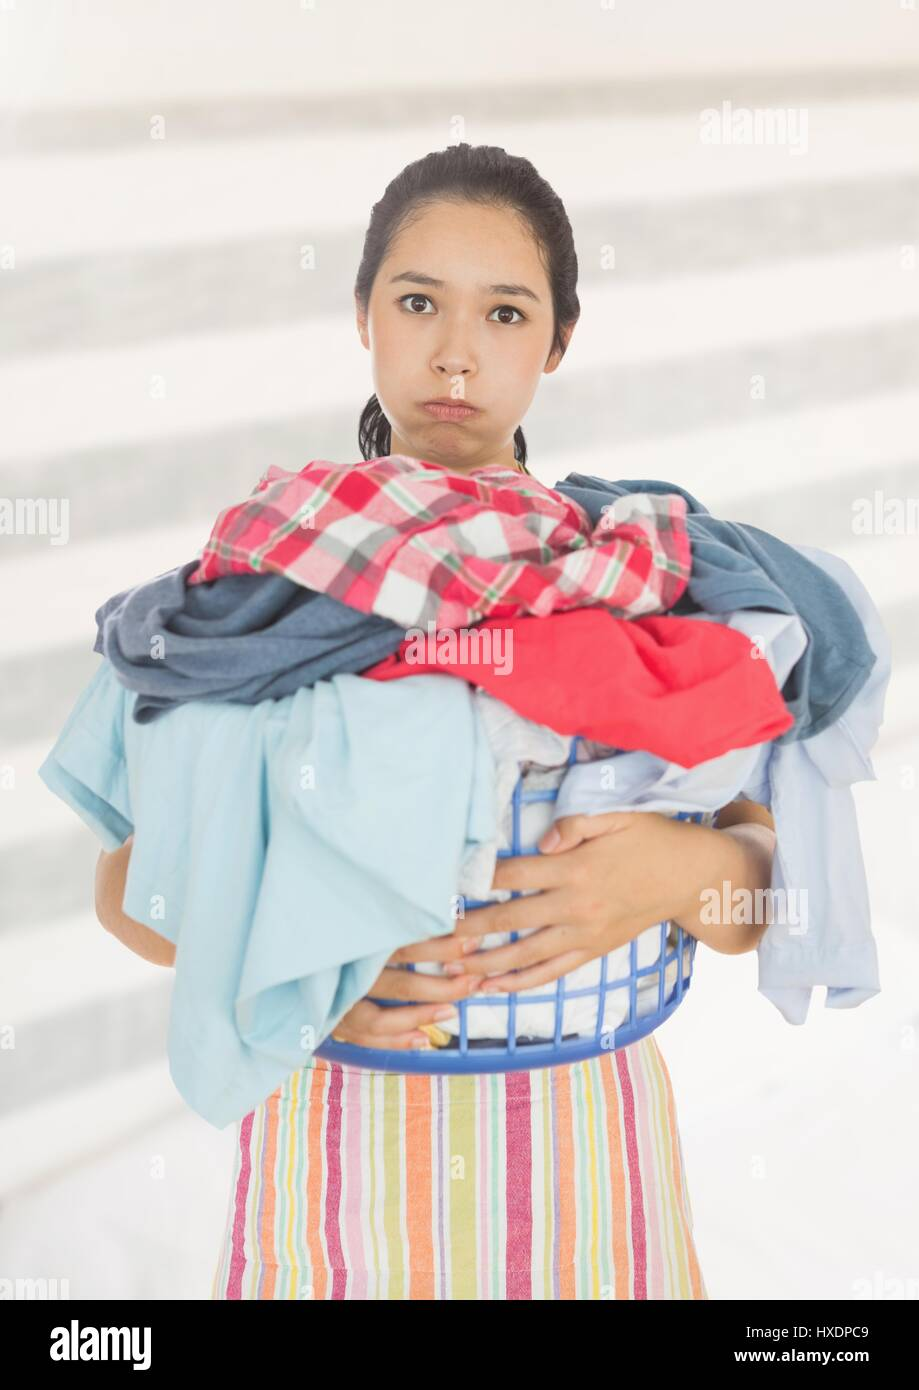 Digital composite of Tired upset woman with laundry basket against bright background - Stock Image